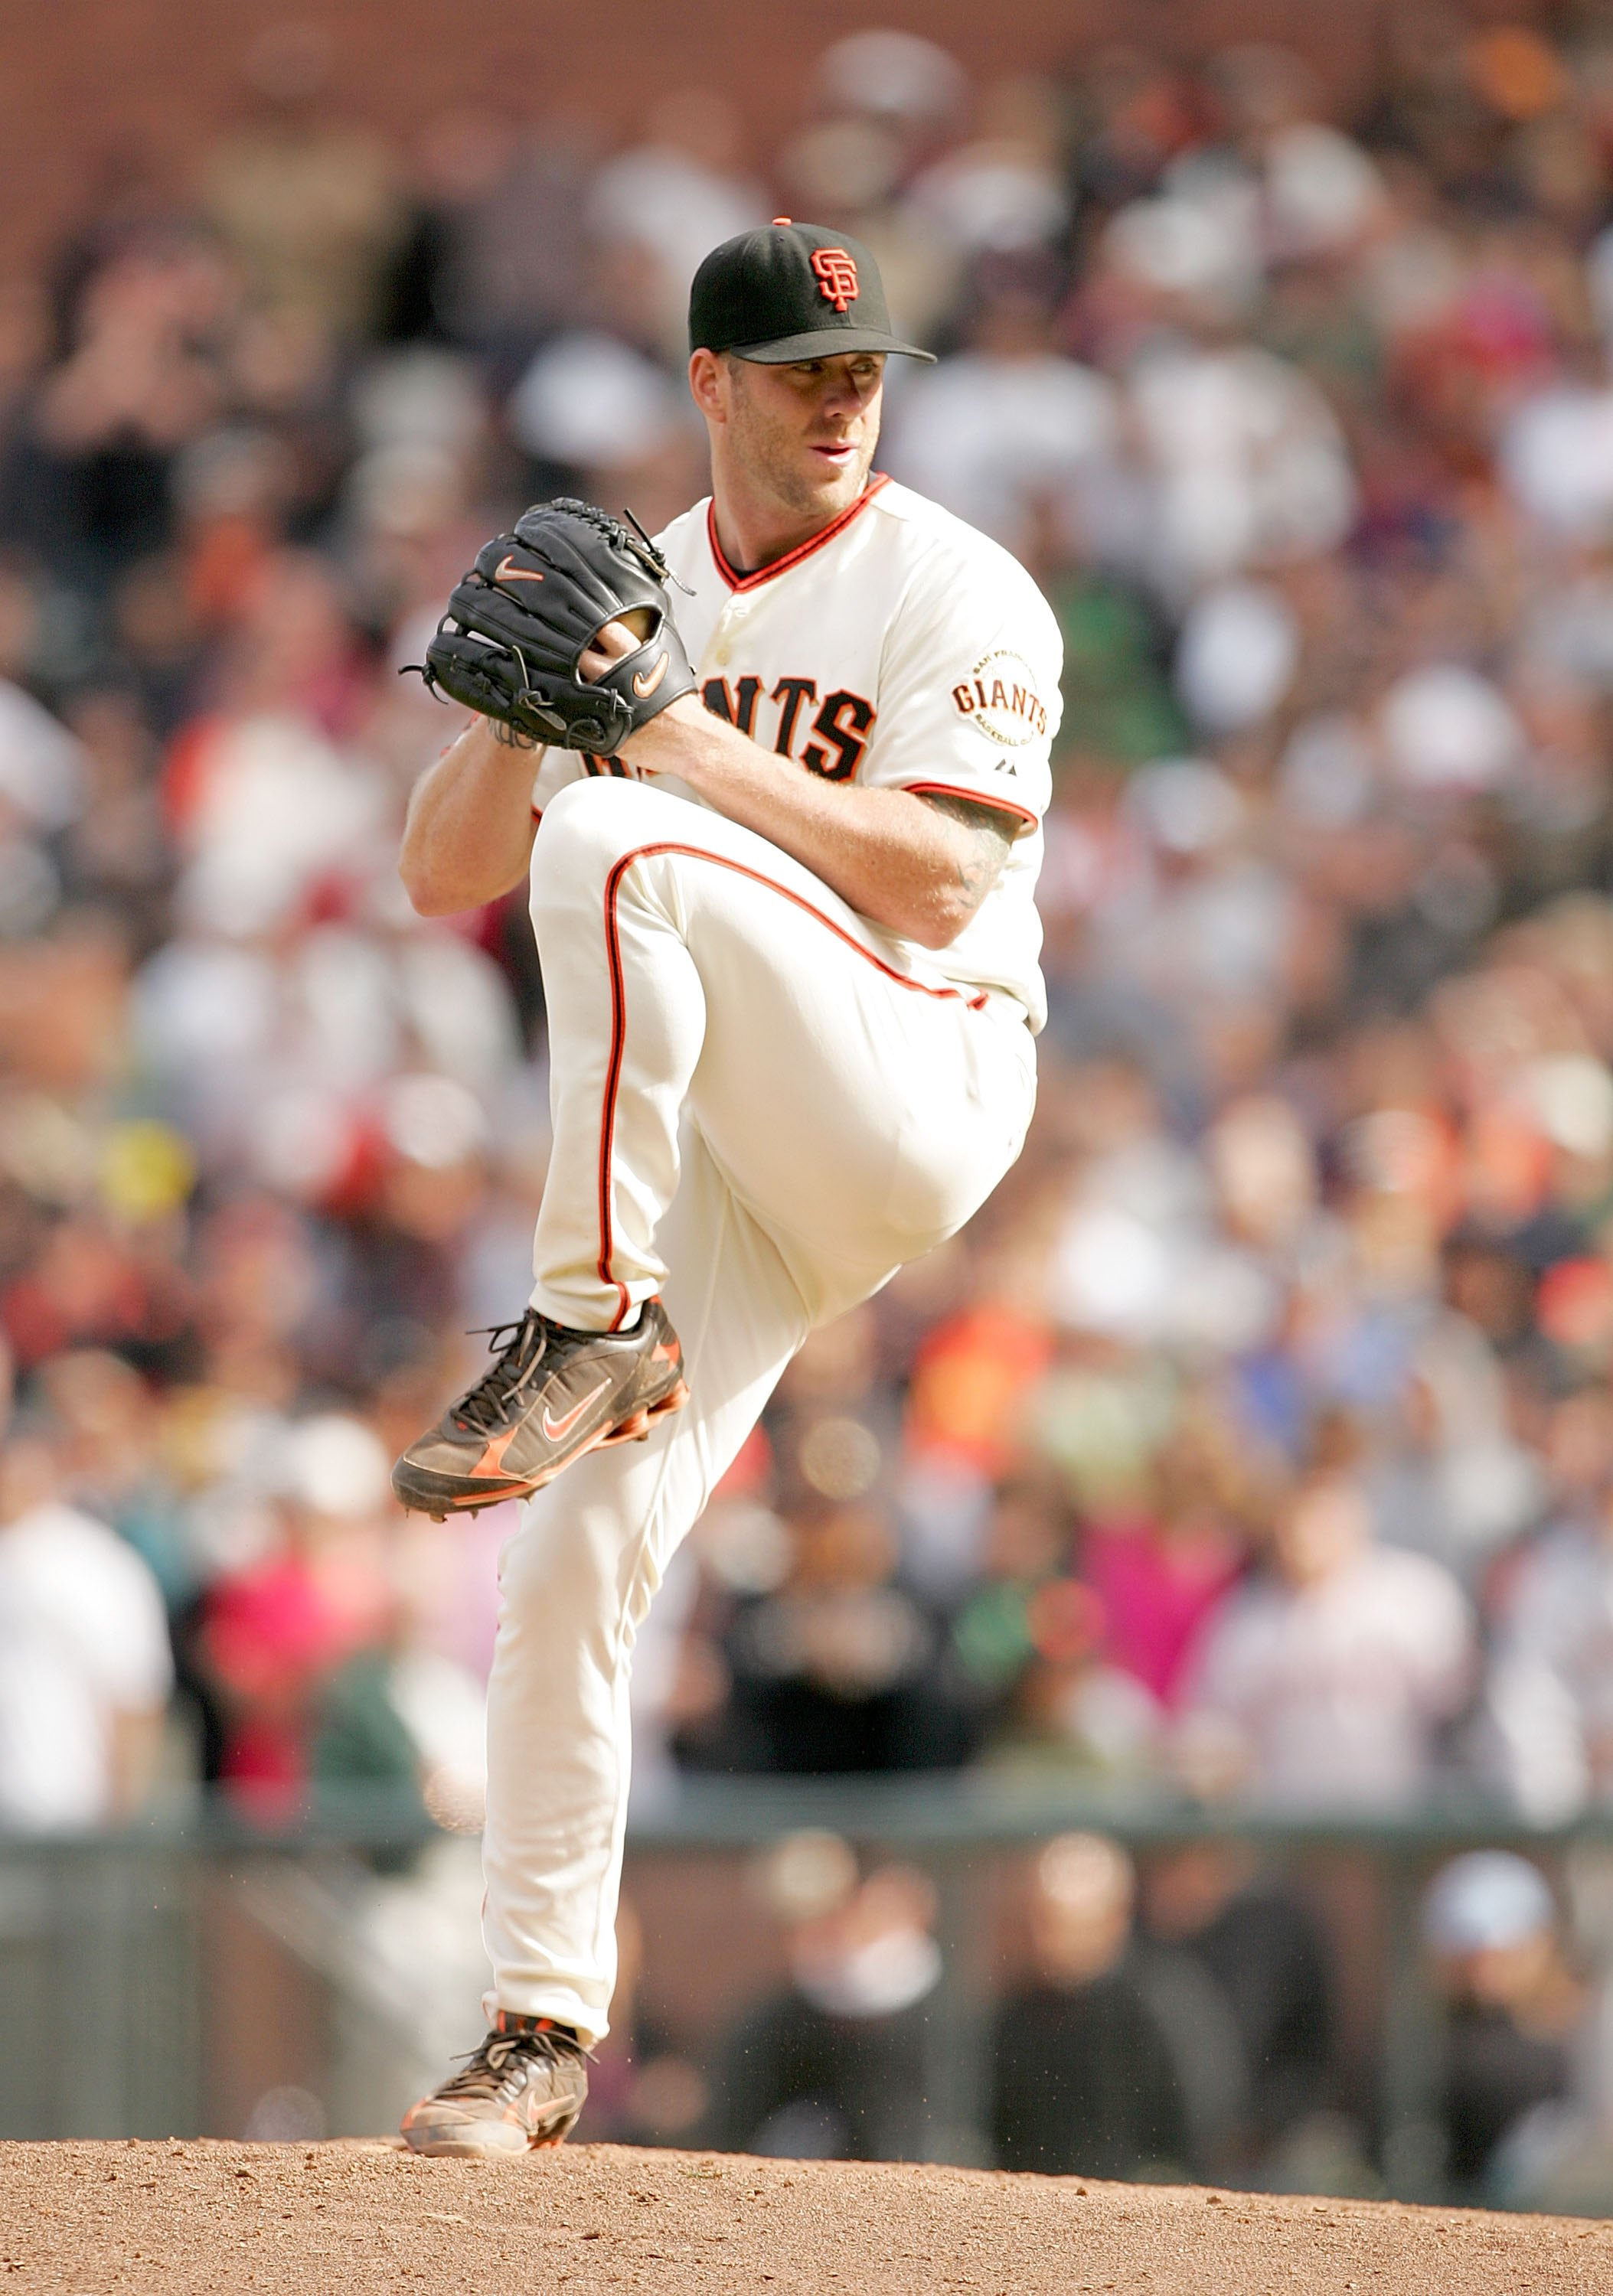 SAN FRANCISCO - AUGUST 30:  Brian Wilson #38 of the San Francisco Giants pitches against the Colorado Rockies at AT&T Park on August 30, 2009 in San Francisco, California.  (Photo by Ezra Shaw/Getty Images)